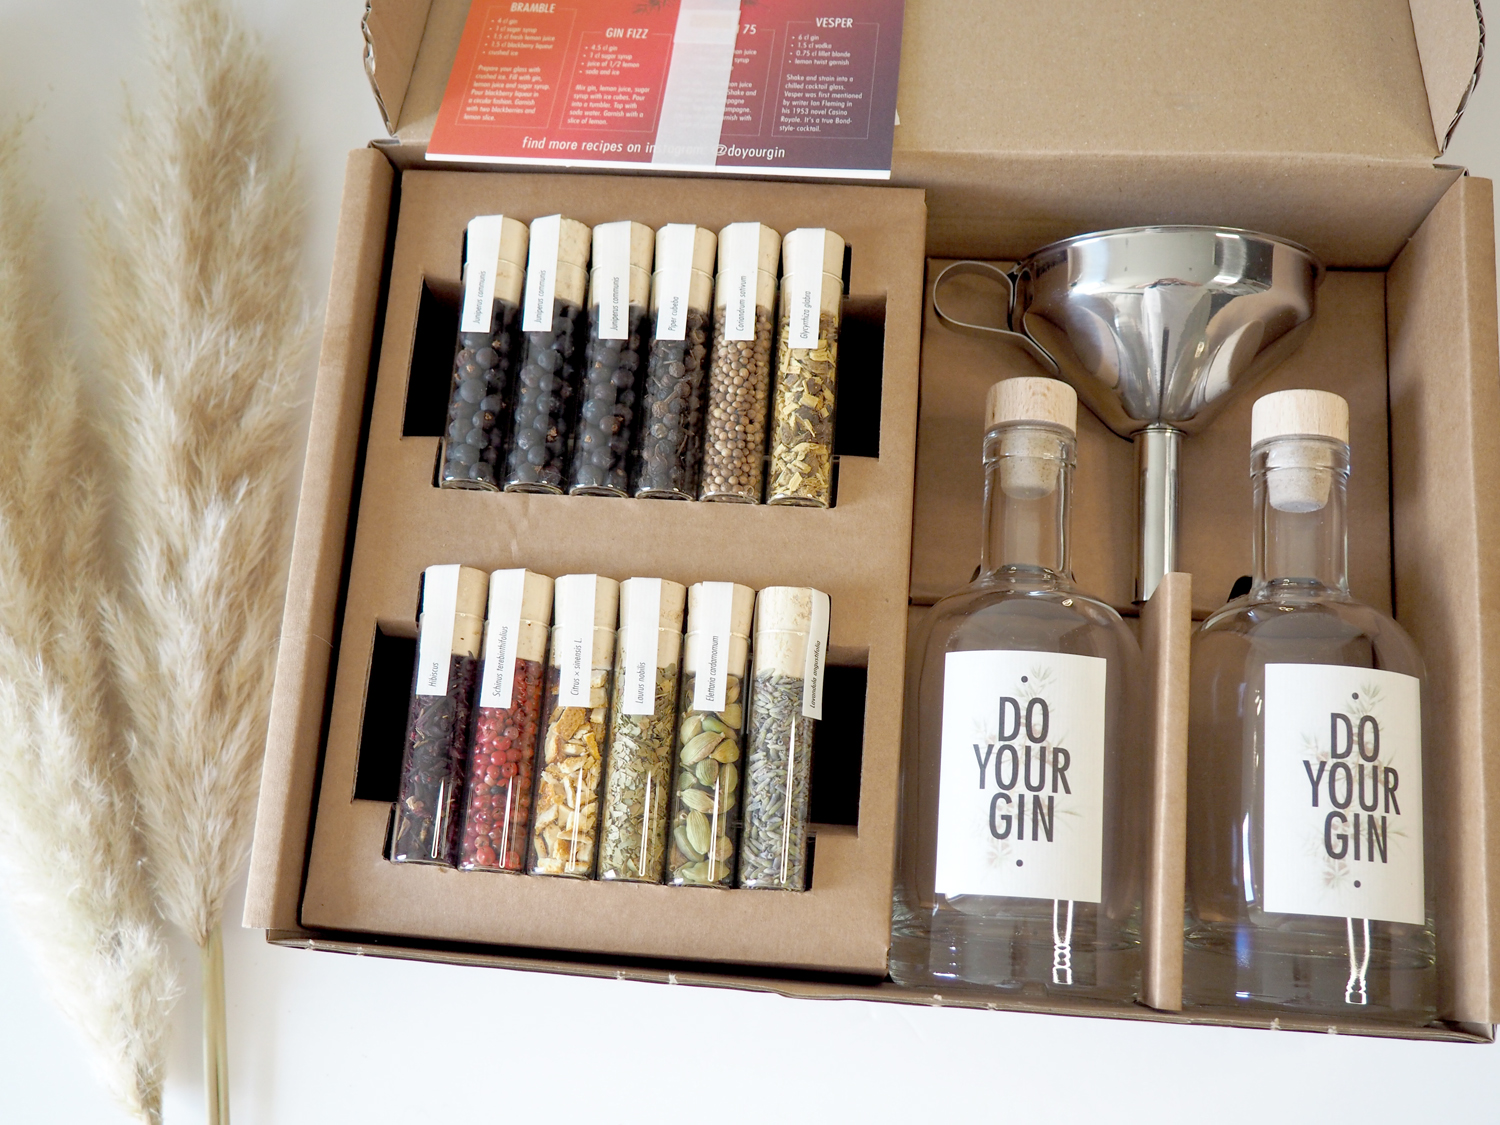 How to make flavoured gin